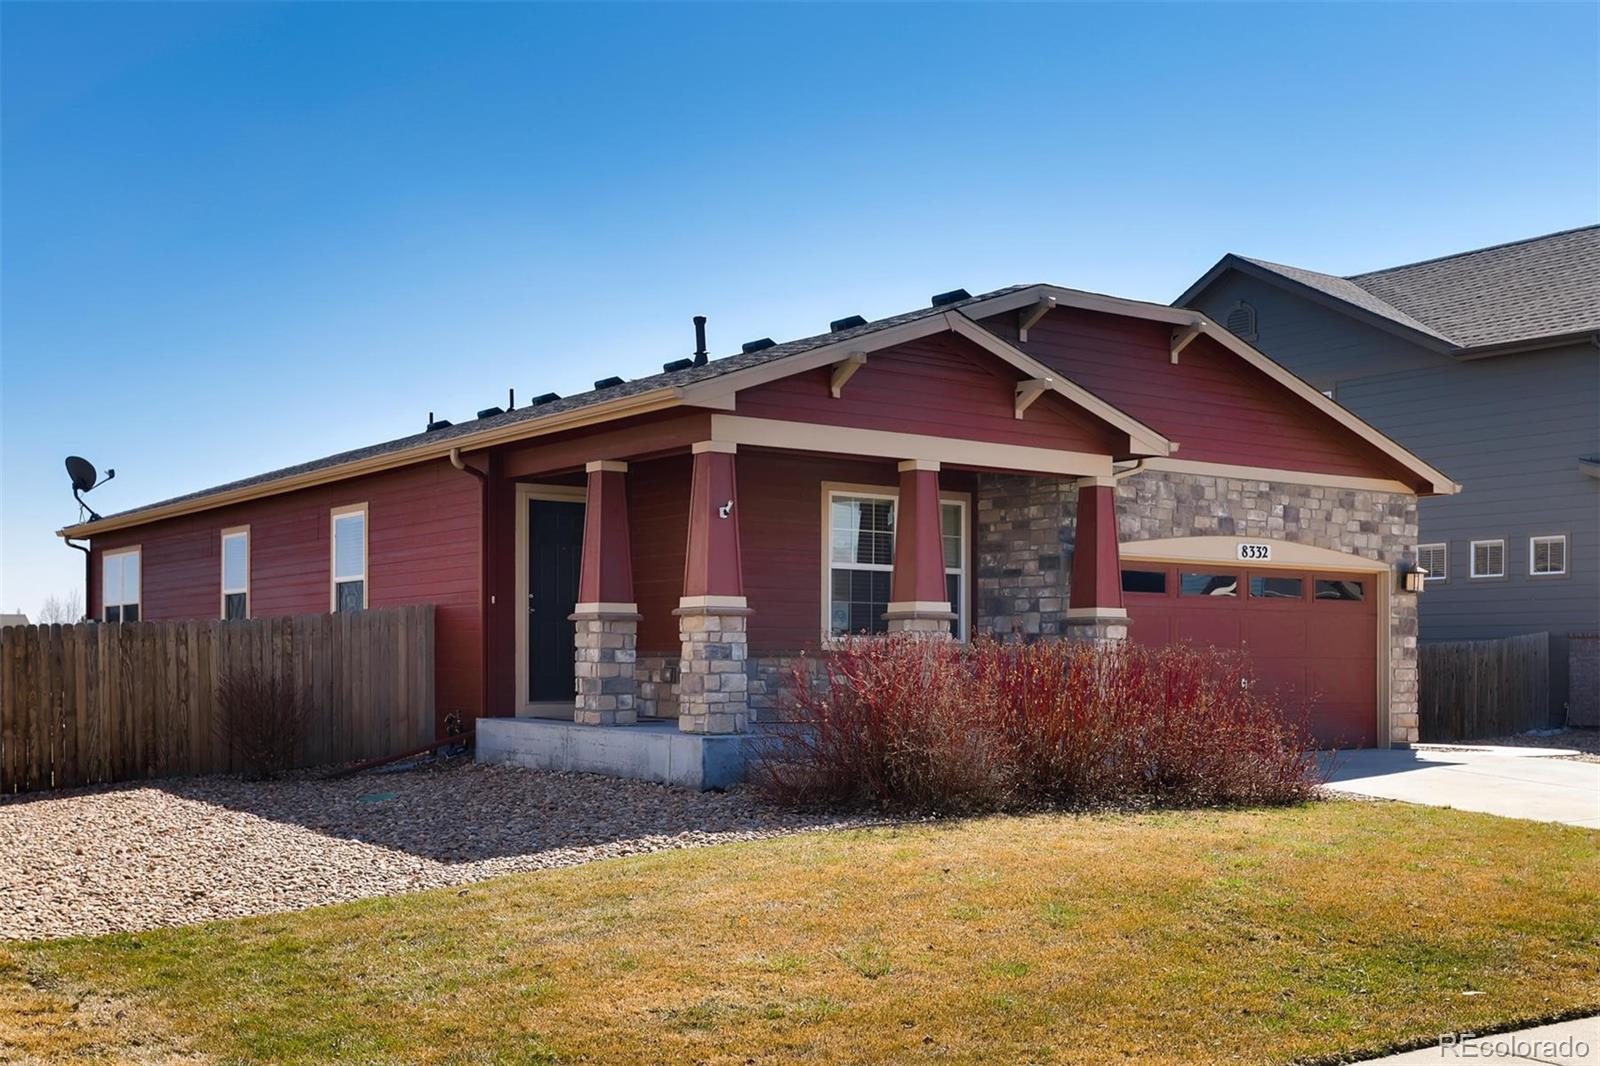 MLS# 2997117 - 1 - 8332 Raspberry Drive, Frederick, CO 80504